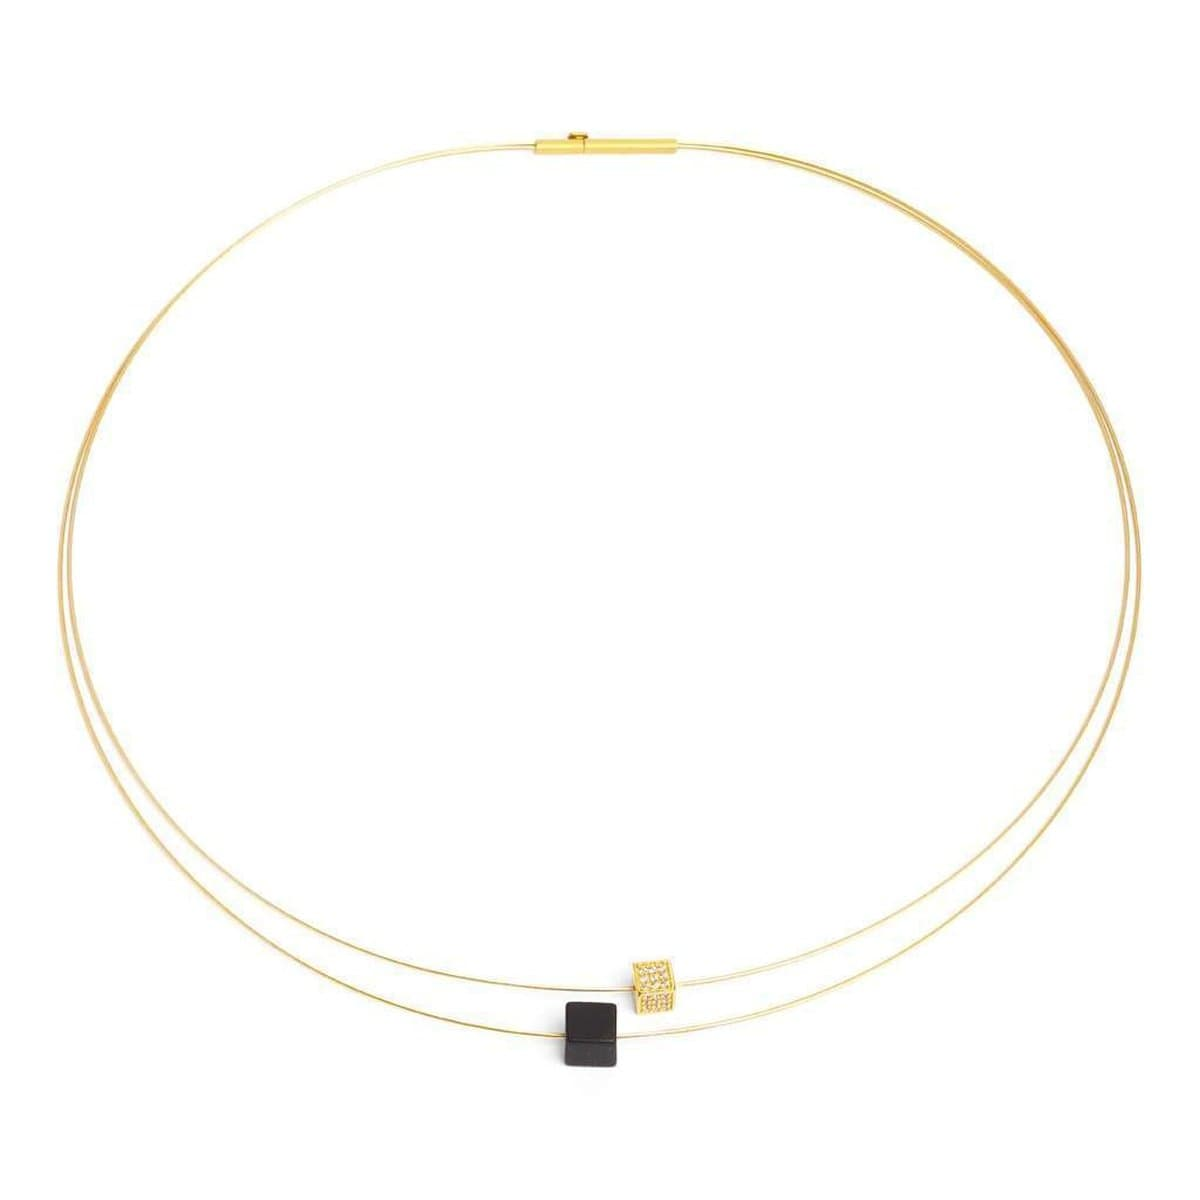 Cubetta Onyx Zirconia Necklace - 87156896